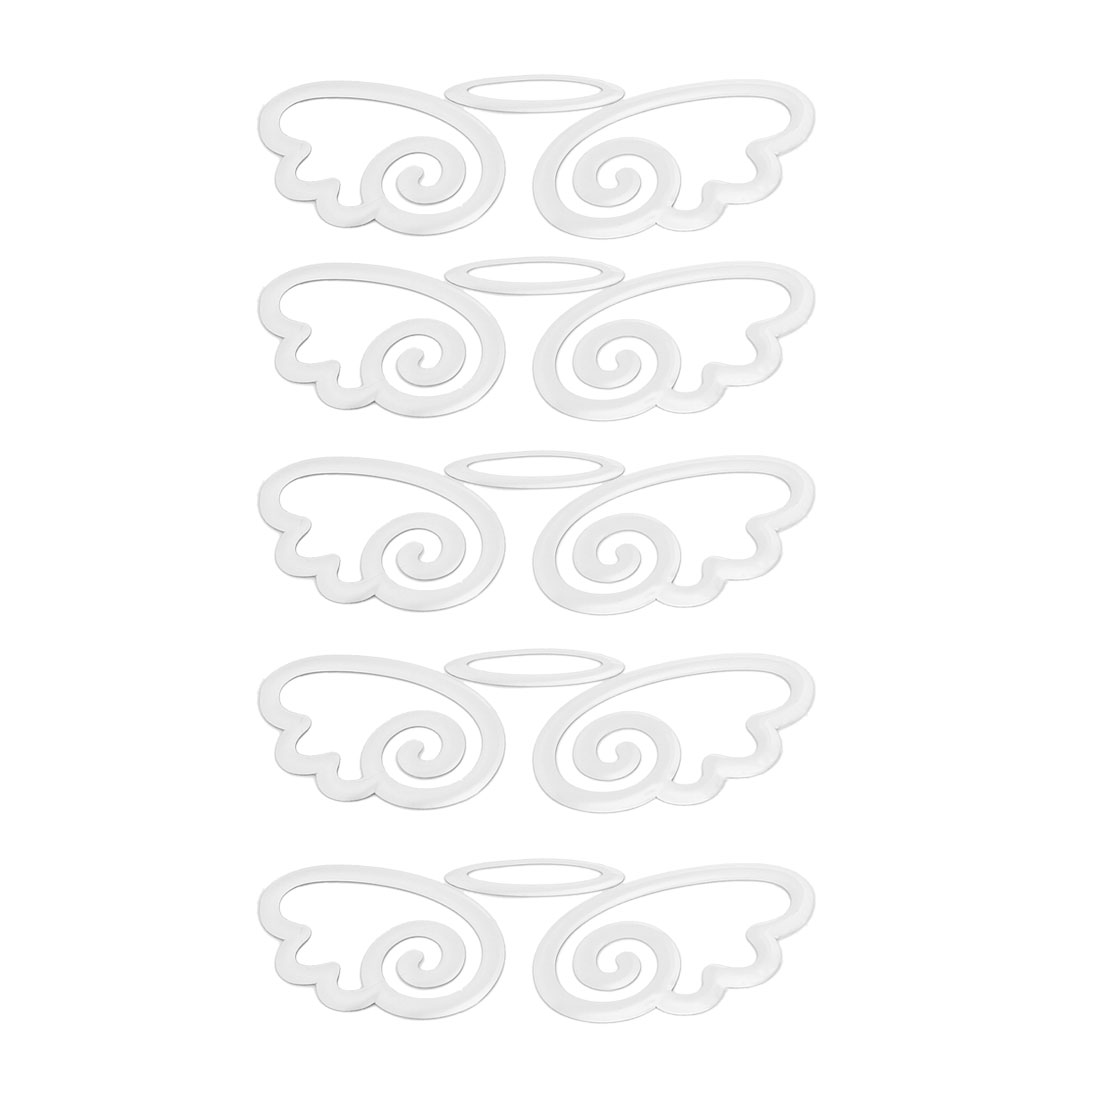 Silver Tone Self-Adhesive Wing Design Car Decal Stickers Ornament 5 Pcs